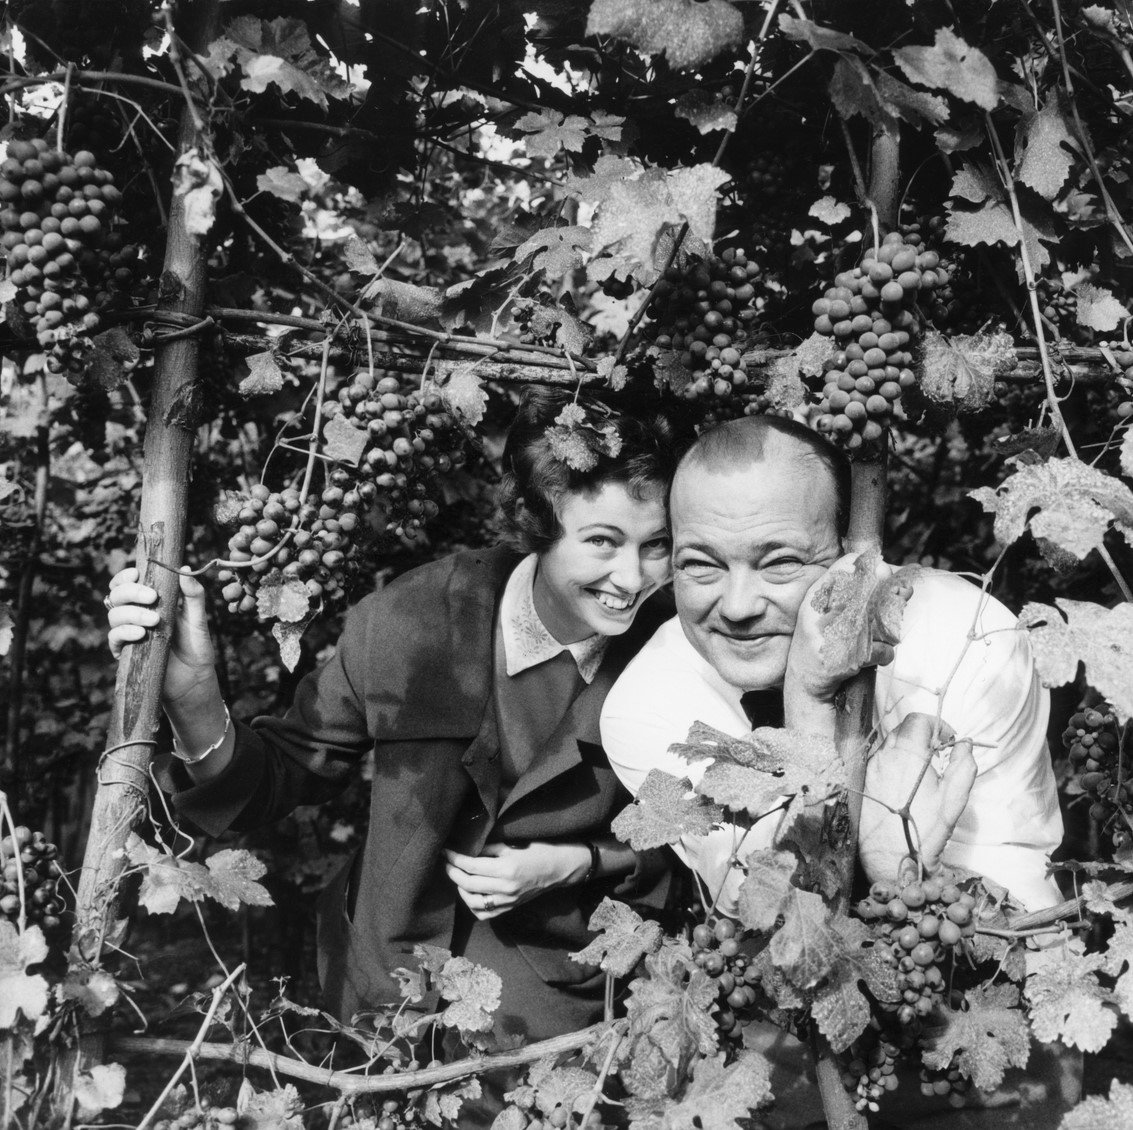 Ulla and Stieg Trenter among vines, circa 1965. Photo: Studio Gullers (K W Gullers arkiv, Nordiska museet, NMA.0064135)